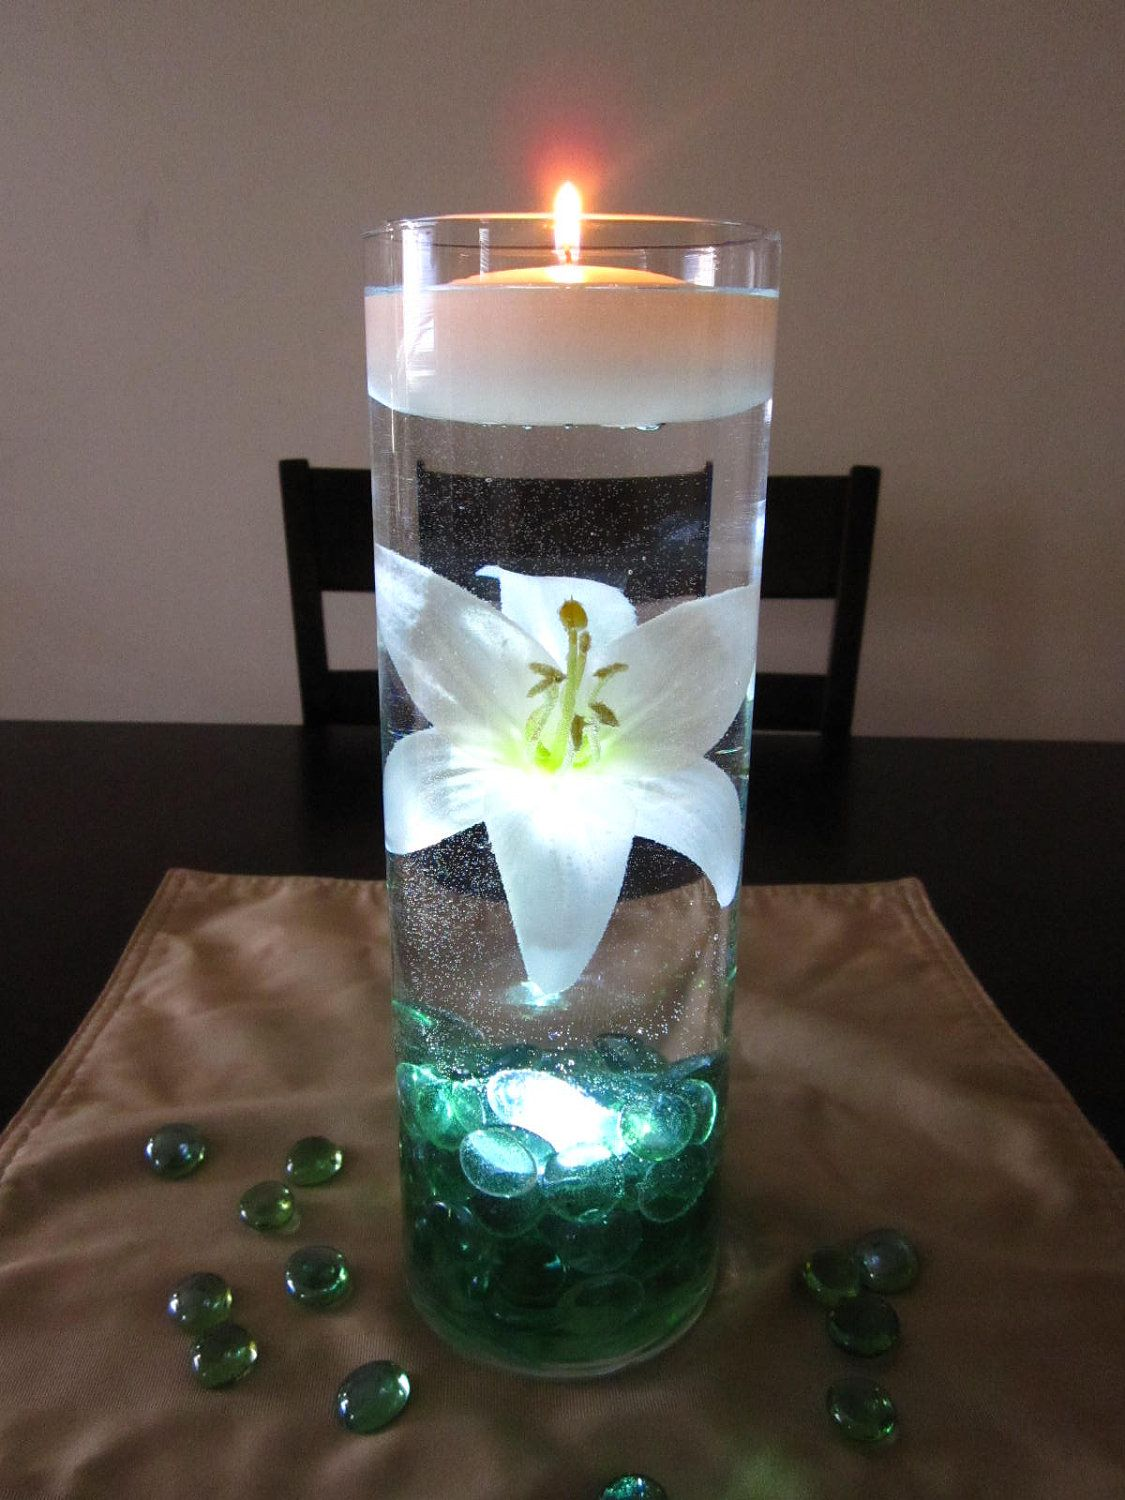 White Lily Centerpiece Kit With Sea Green Marbles And LED Light